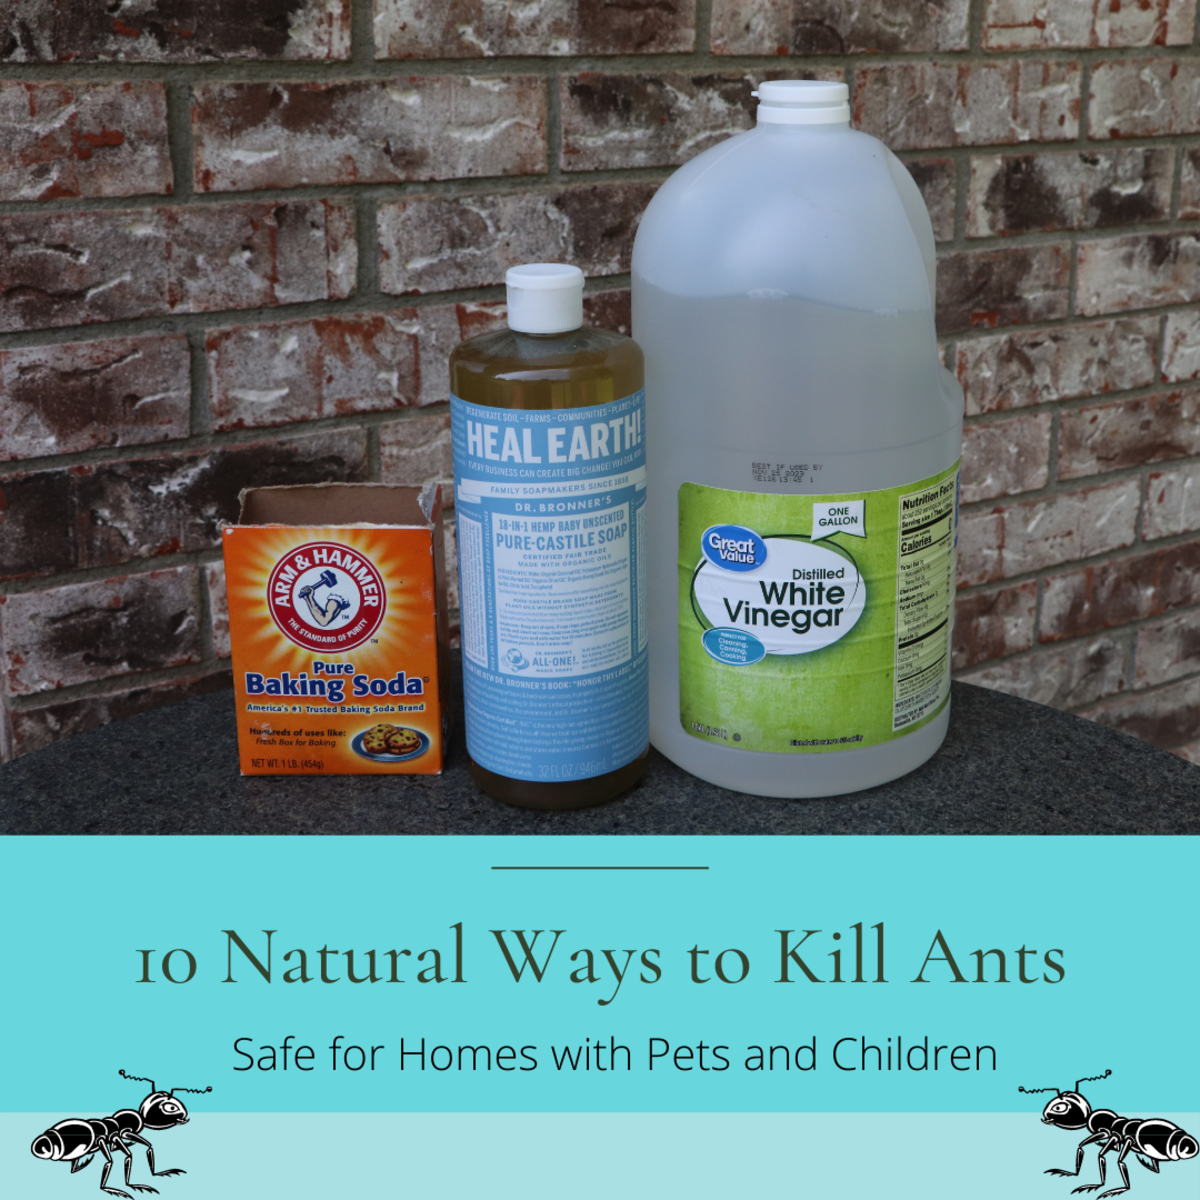 Several common household chemicals are non-toxic and effective at killing or repelling ants.